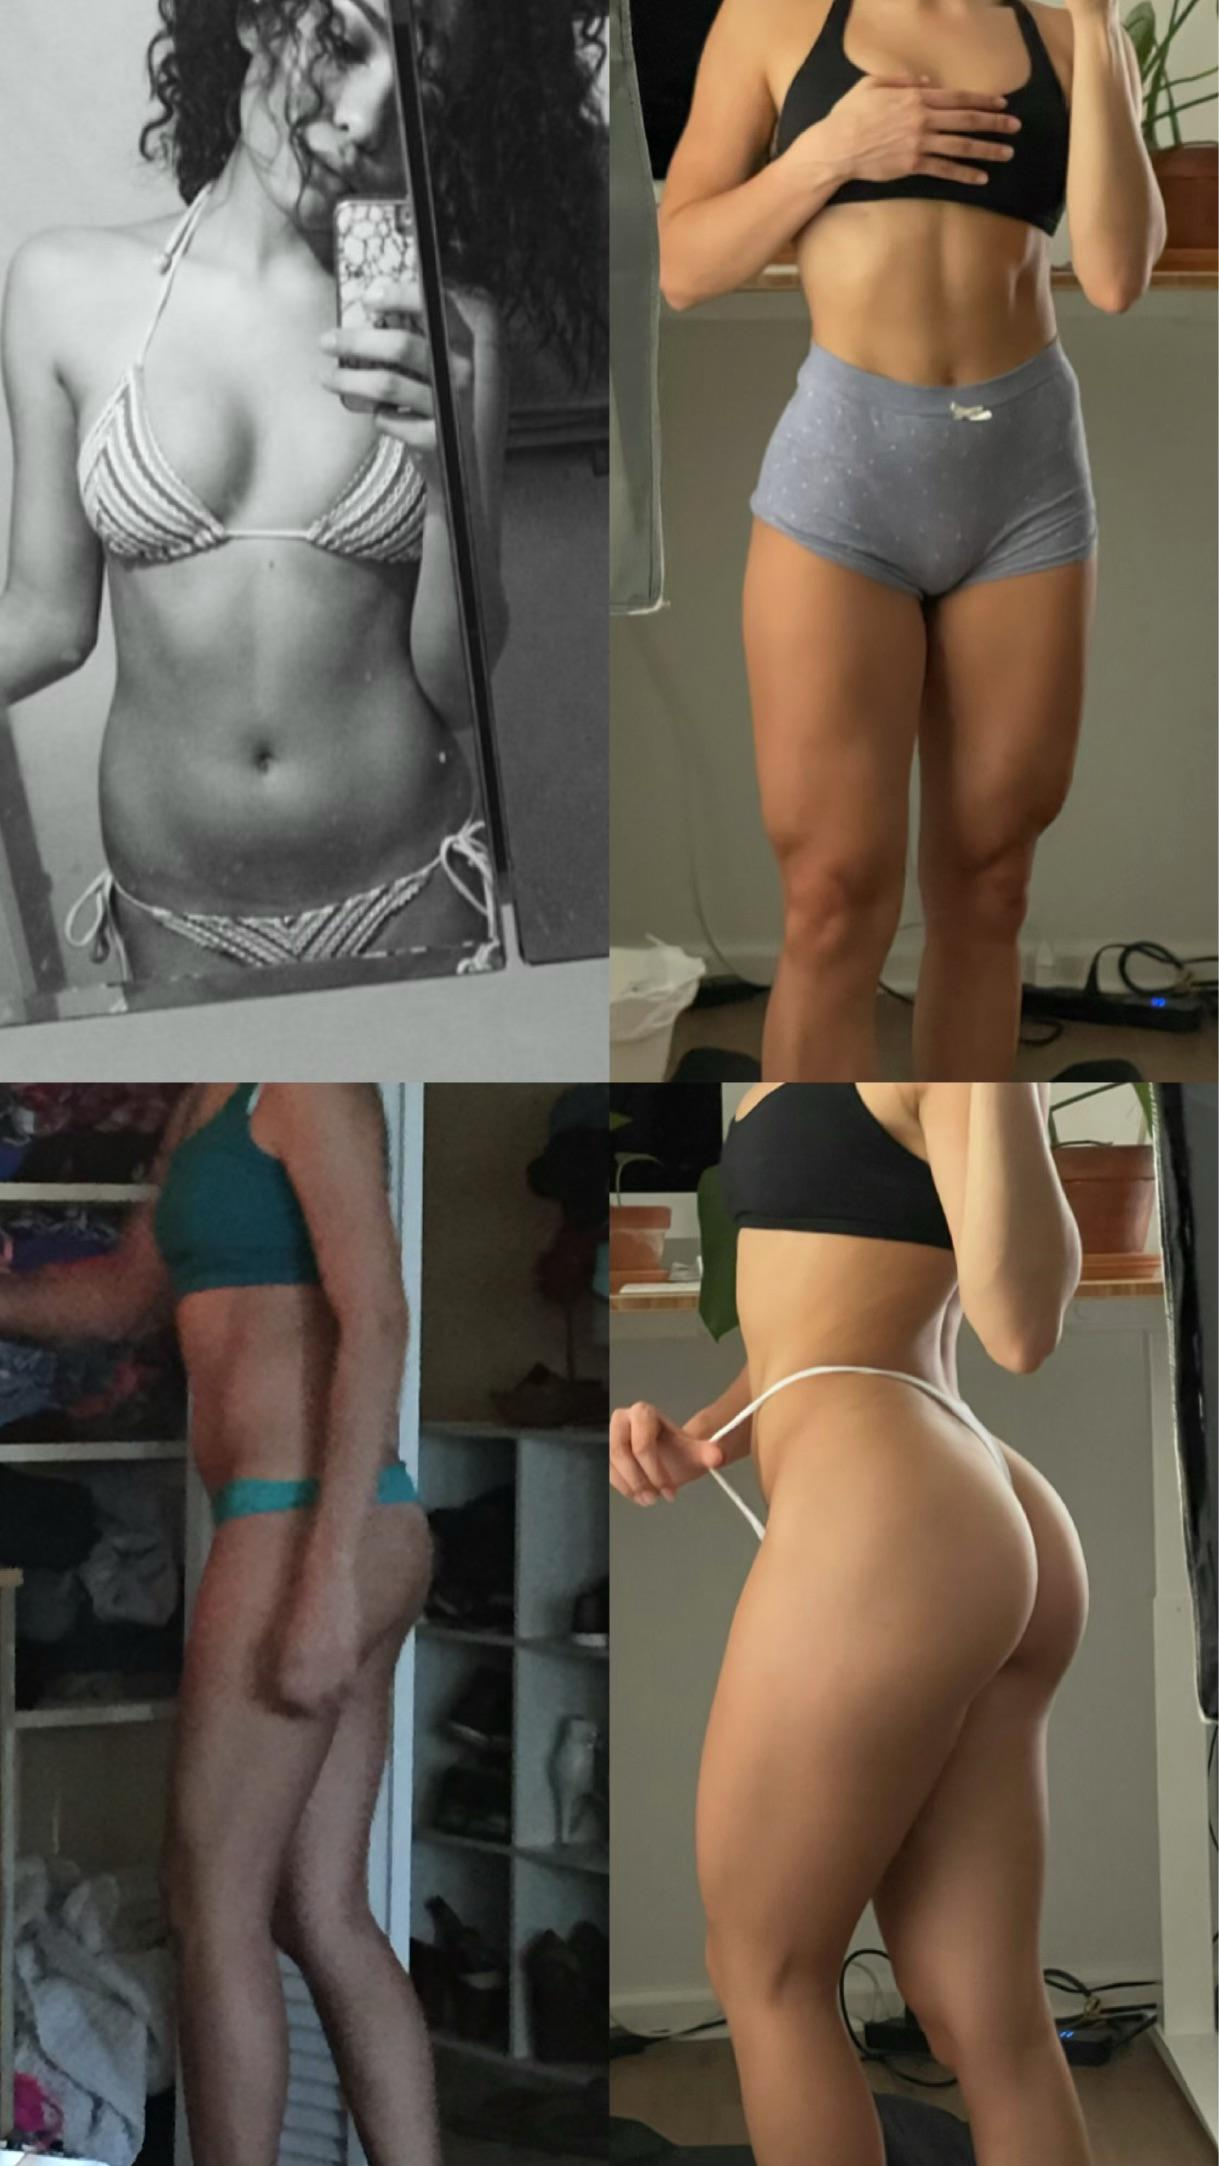 15 lbs Muscle Gain Before and After 5'3 Female 105 lbs to 120 lbs